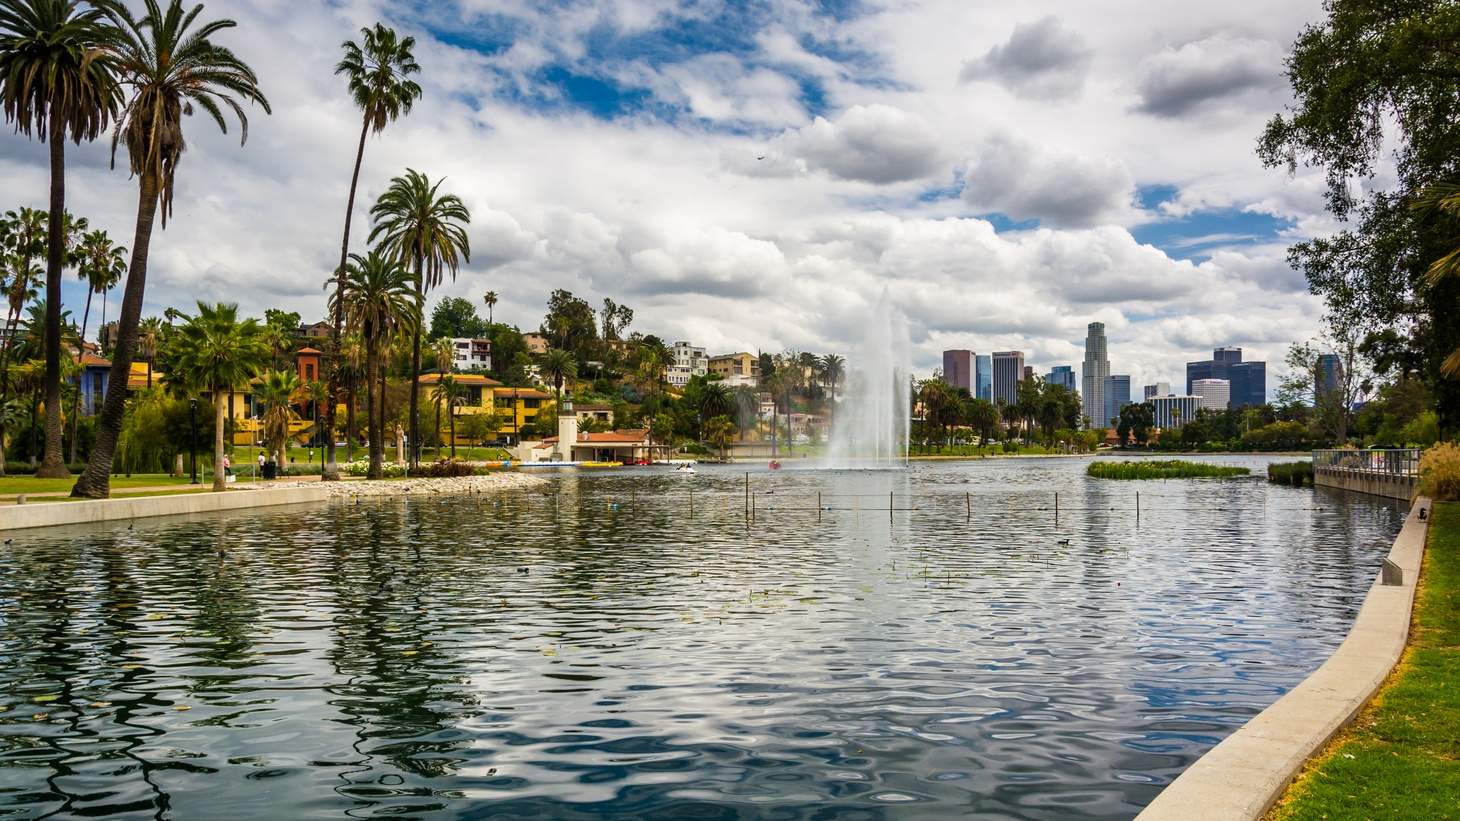 More than 160 unhoused Angelenos got relocated from Echo Park Lake to hotels or shelters. The city has been cleaning up the area, and the park is expected to reopen by the end of May.